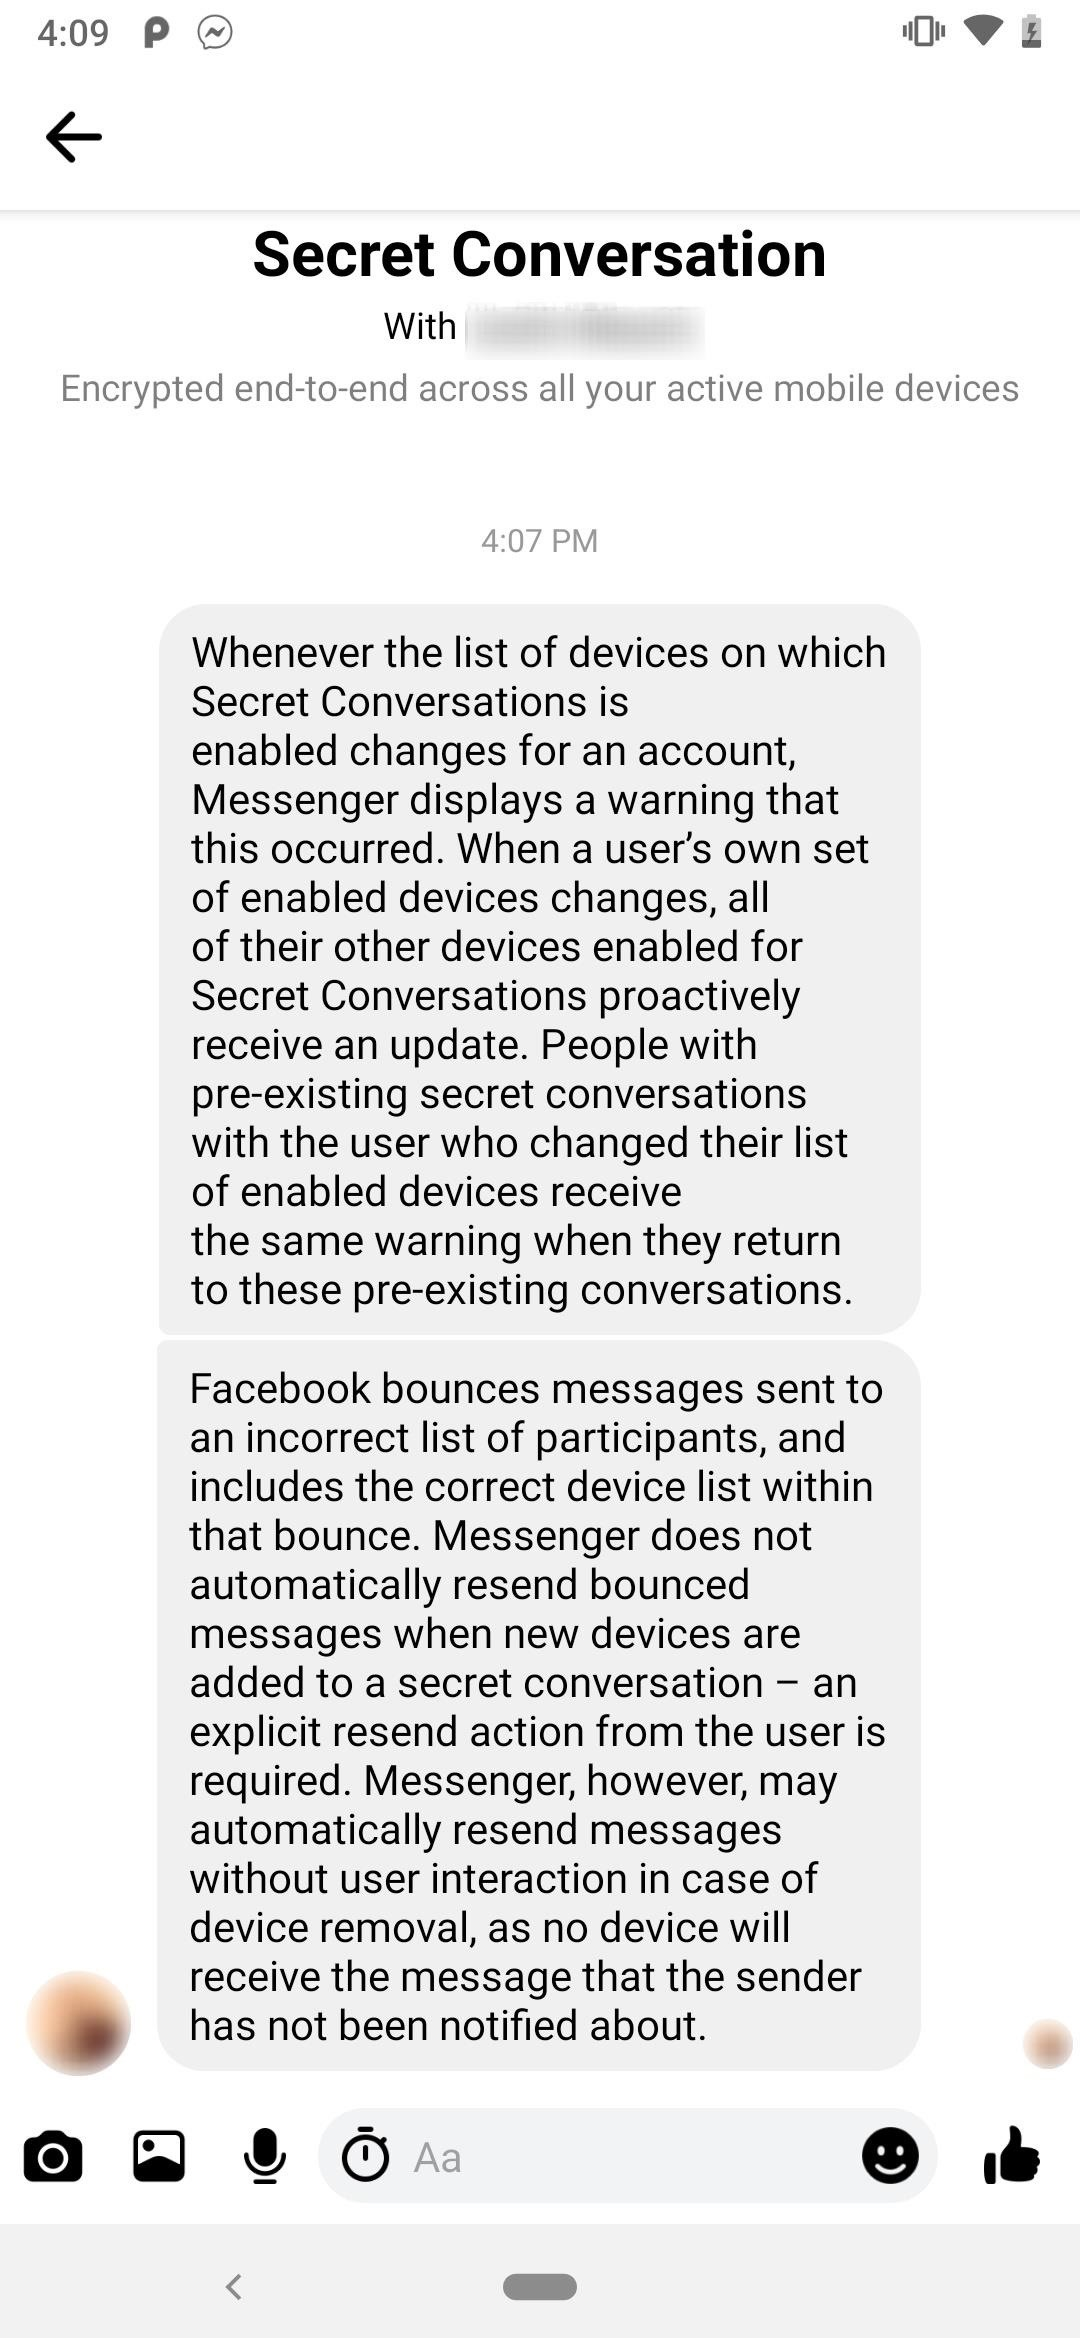 How to Chat with End-to-End Encryption Using Facebook Messenger's Secret Conversations